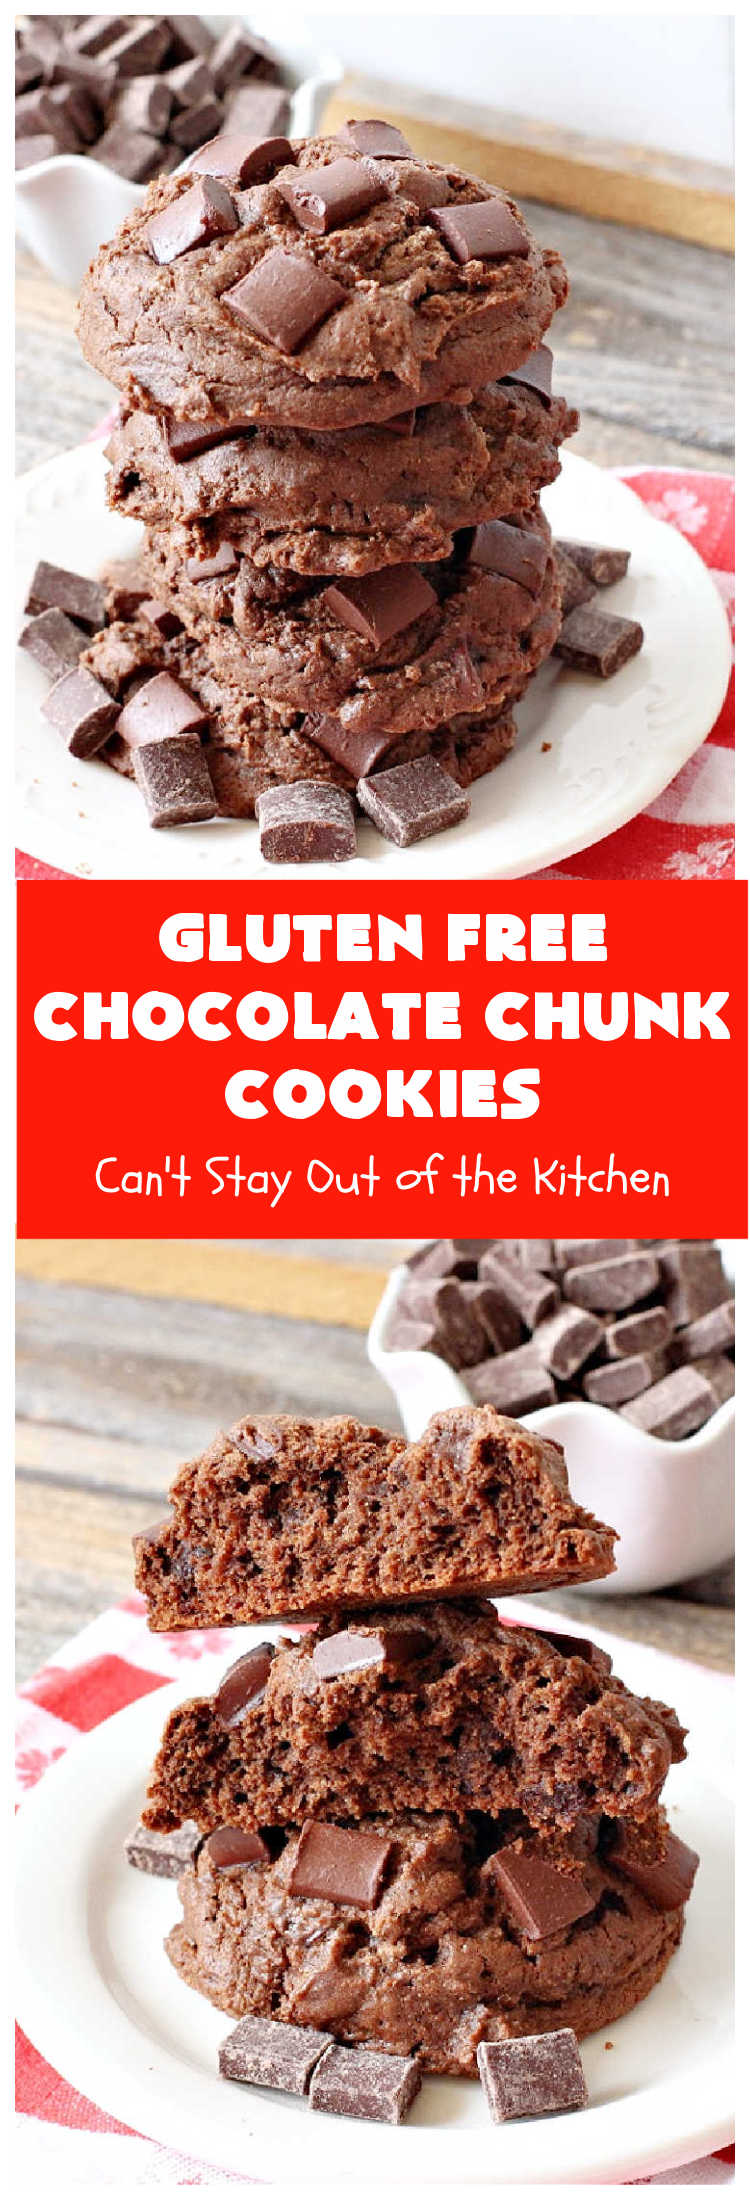 Gluten Free Chocolate Chunk Cookies | Can't Stay Out of the Kitchen | these awesome #cookies are the perfect #dessert for #MemorialDay, #FourthOfJuly, #LaborDay, backyard barbecues or other summer fun. So delicious you won't believe you're eating #GlutenFree #chocolate #tailgating #ChocolateDessert #GlutenFreeDessert #GlutenFreeChocolateChunkCookies